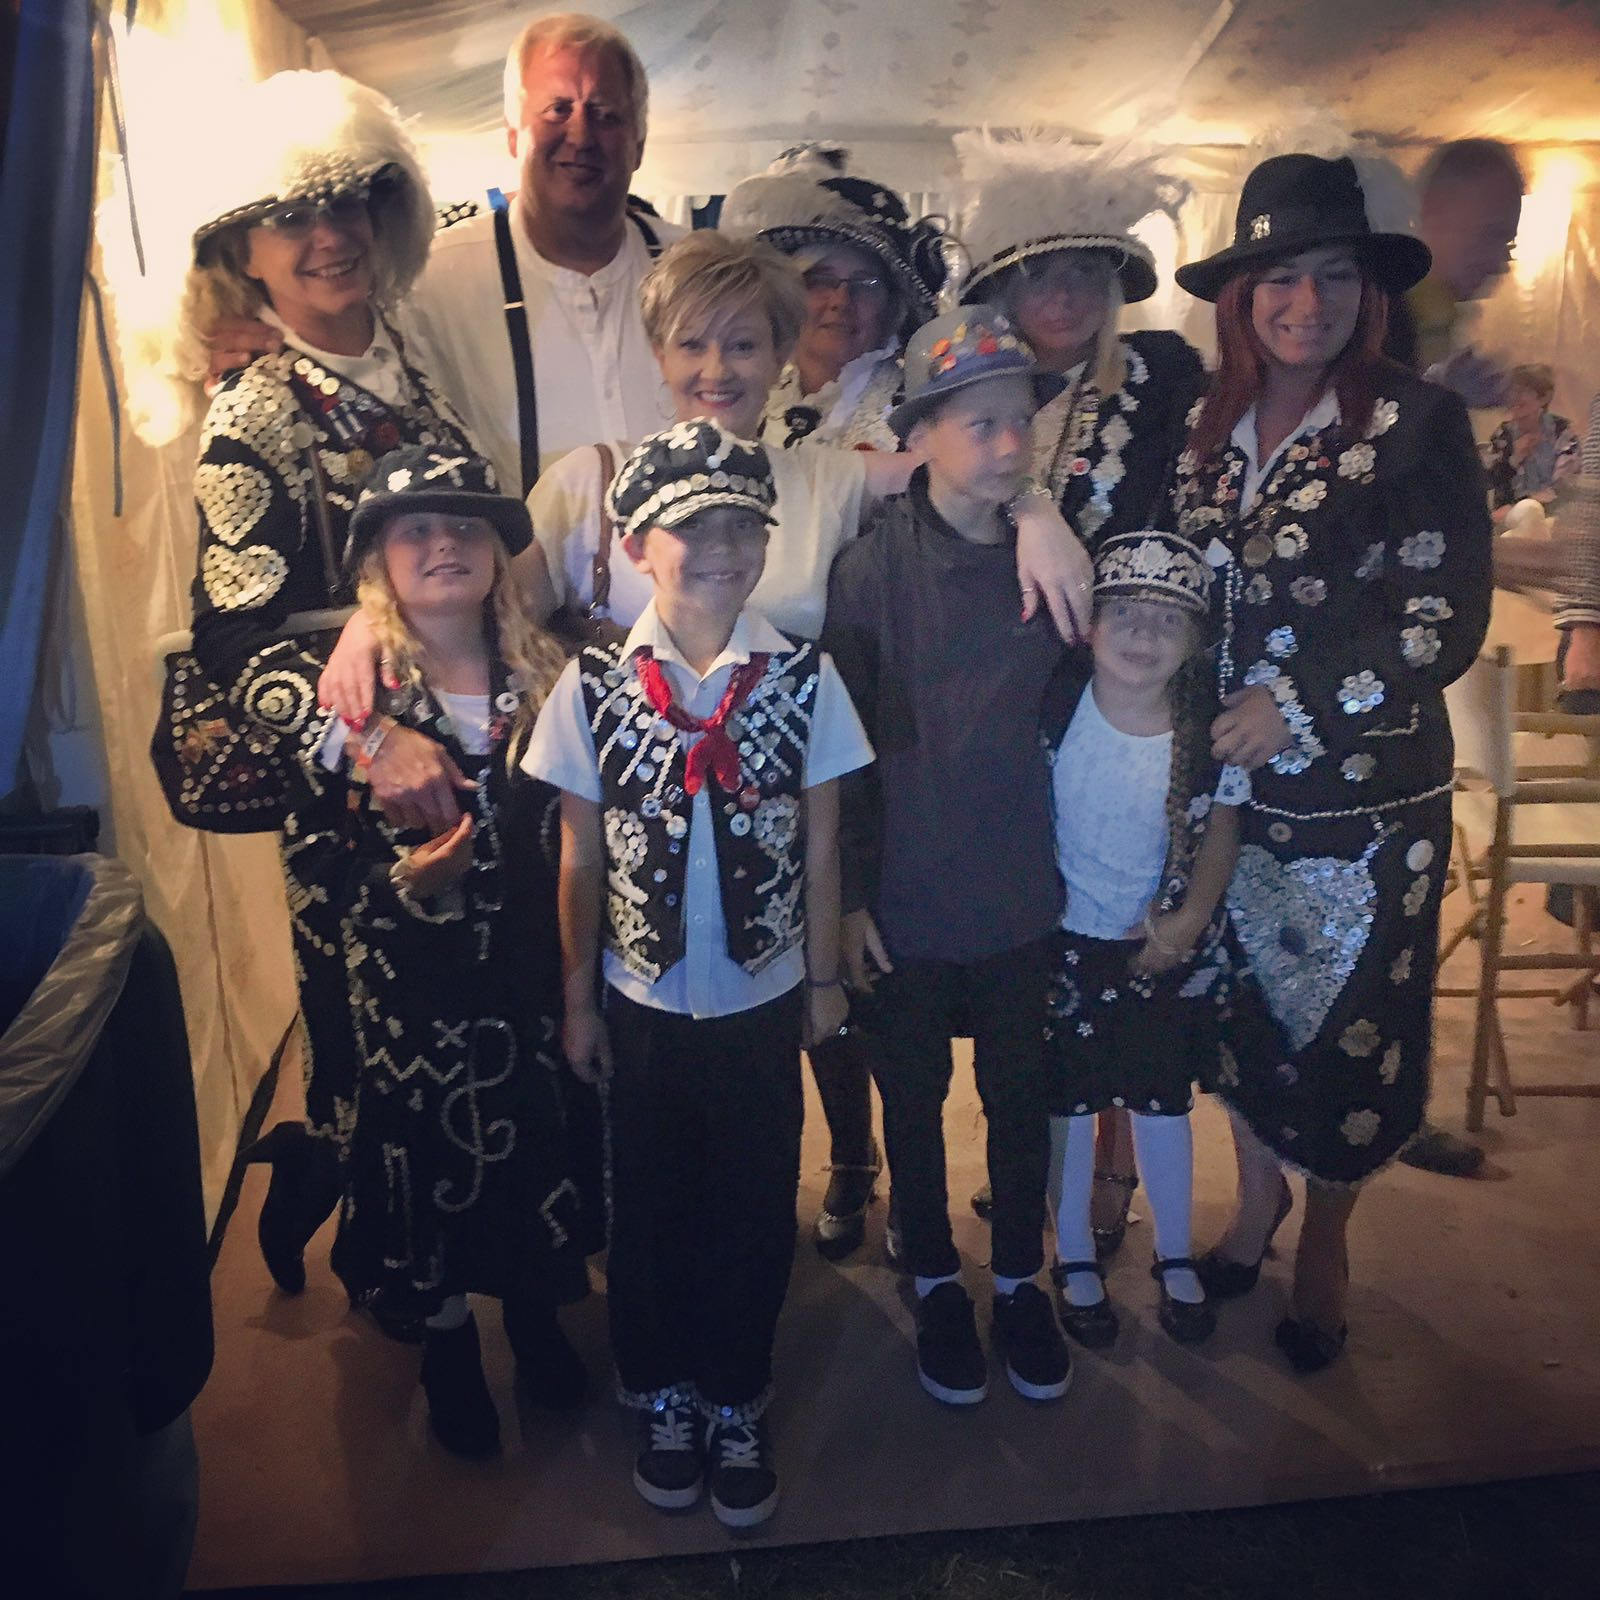 Group shot left to right back row Diane Gould, Pearlyking Jim, Pearly Queen Michelle, Pearly Queen Sherida, Pearly princess Karan. Front row LtoR Pearly Princess Lillie Bliss, Pearly Prince Cain, Pearly photographer Devon and Pearly princess Trinity. The lovely lady in the centre is the landlady of the Dublin Castle Samantha.